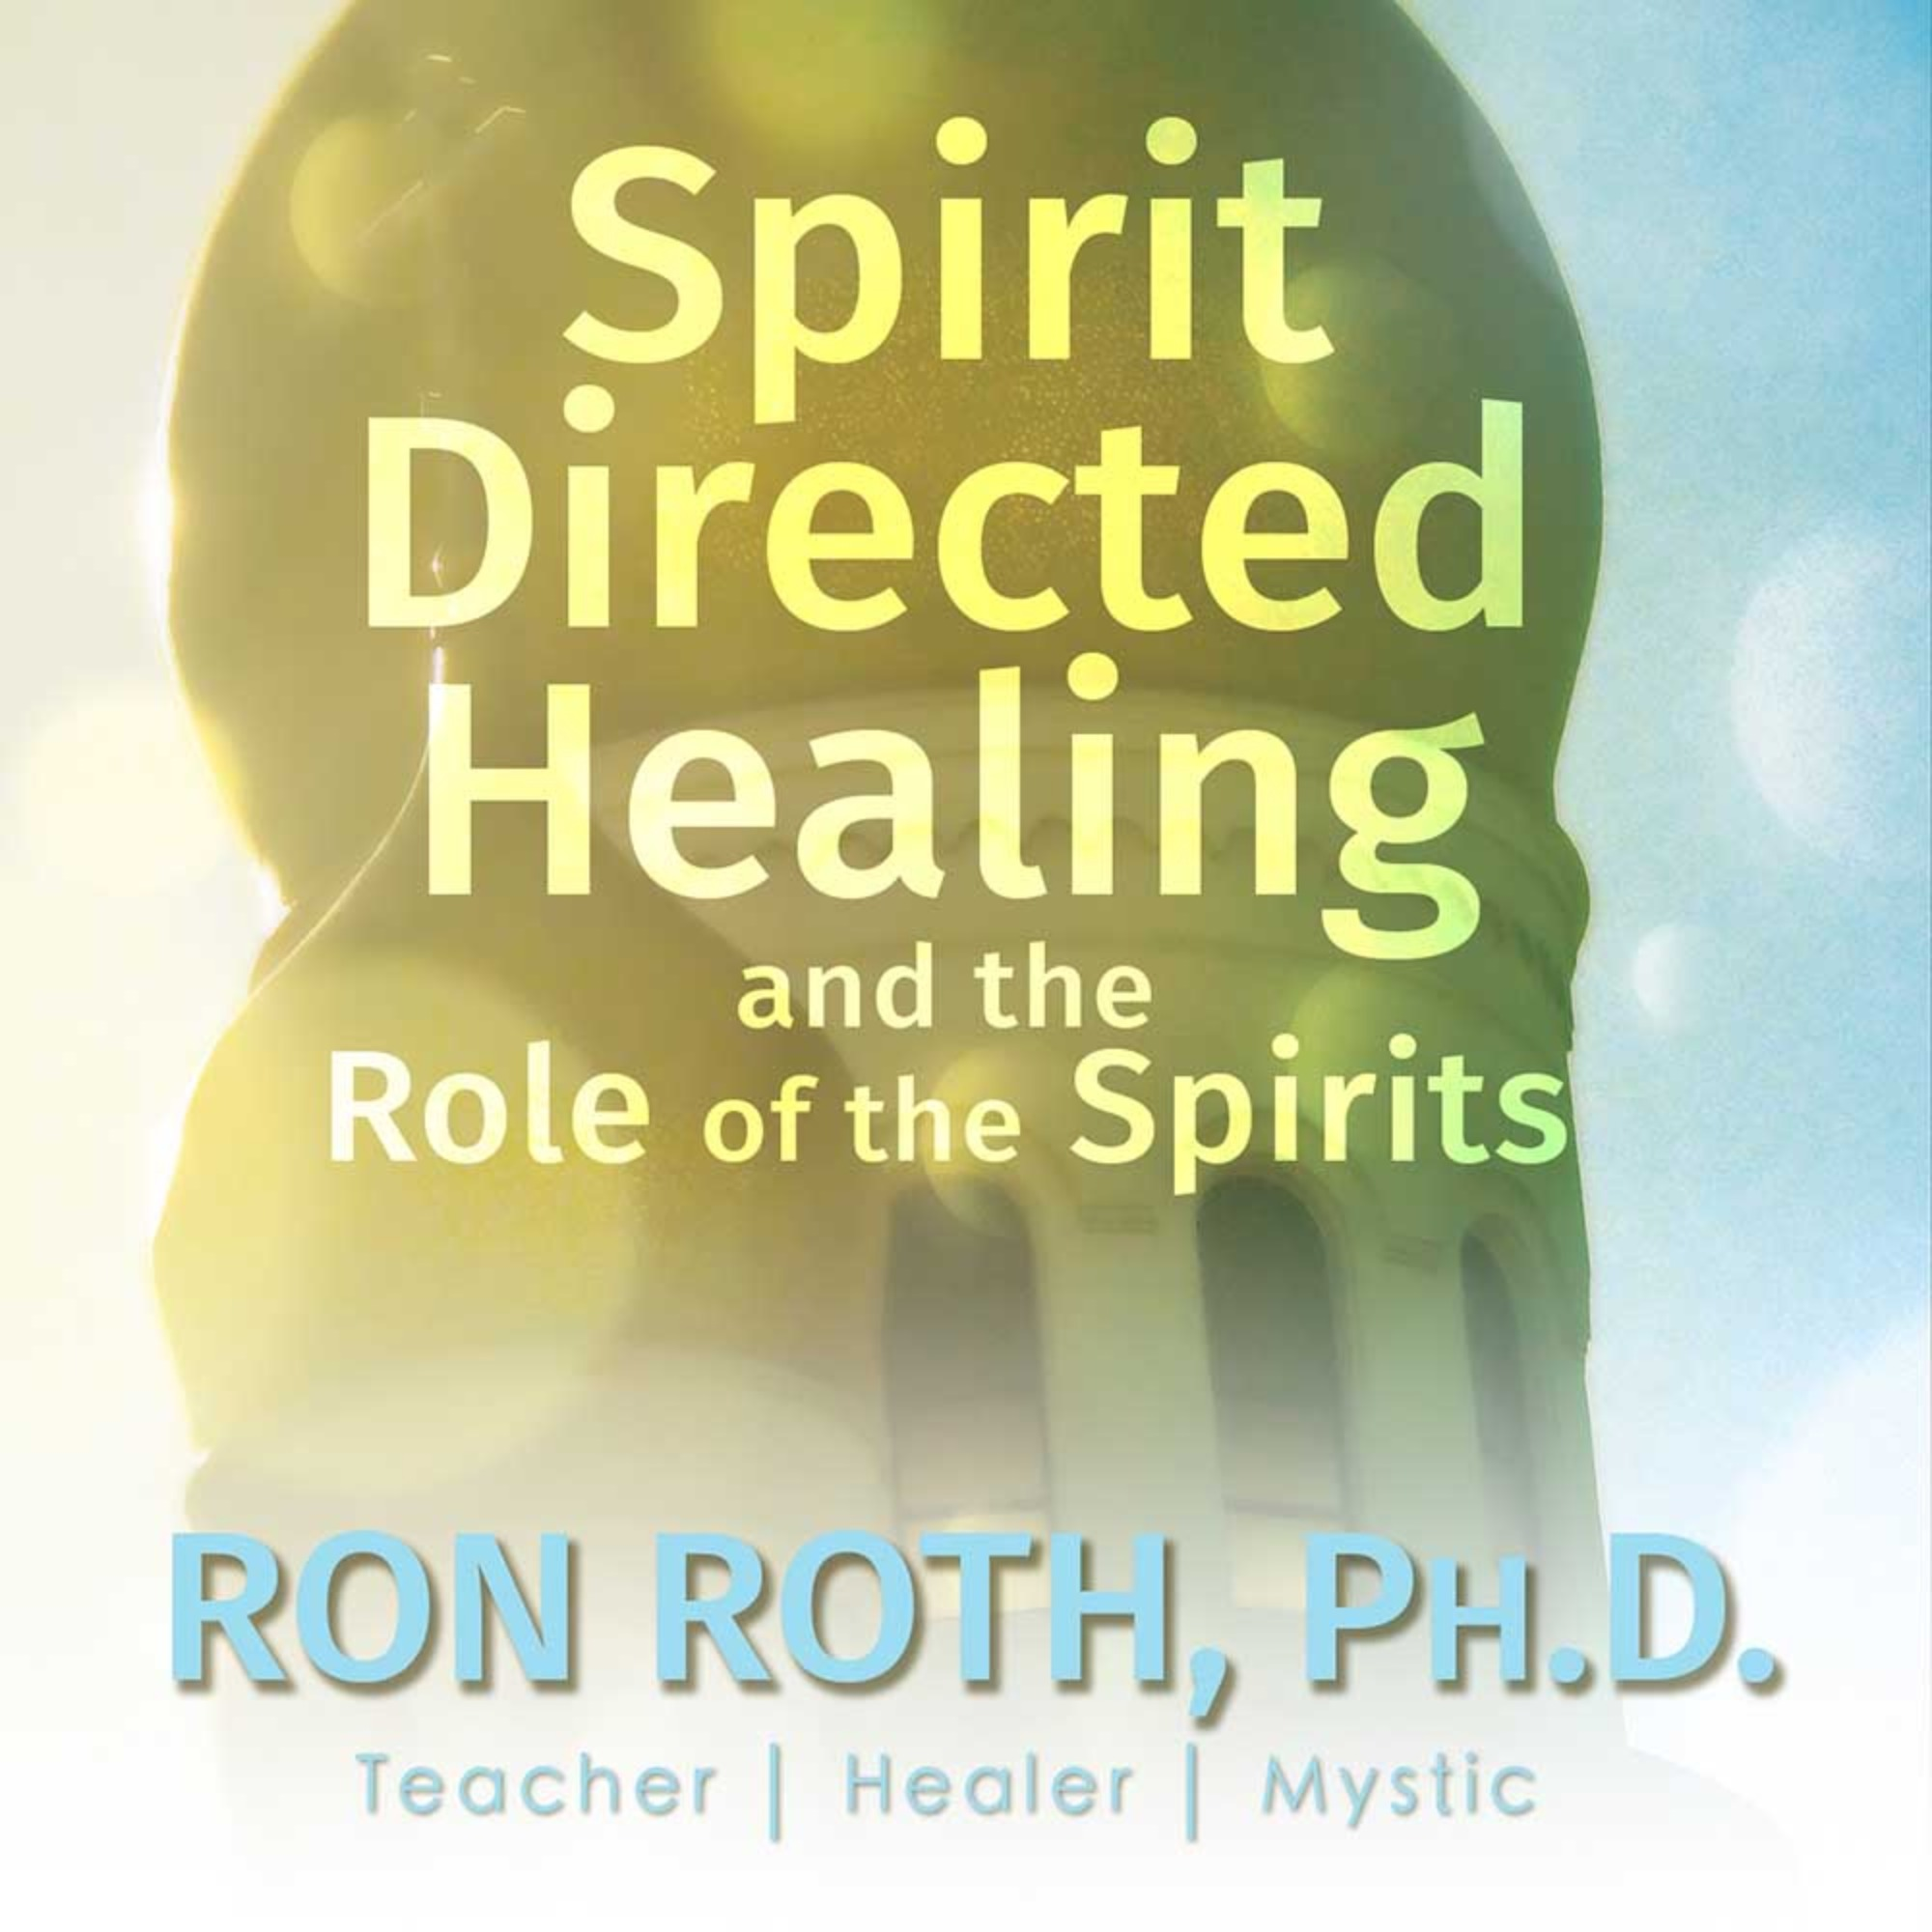 Spirit Directed Healing and the Role of the Spirits